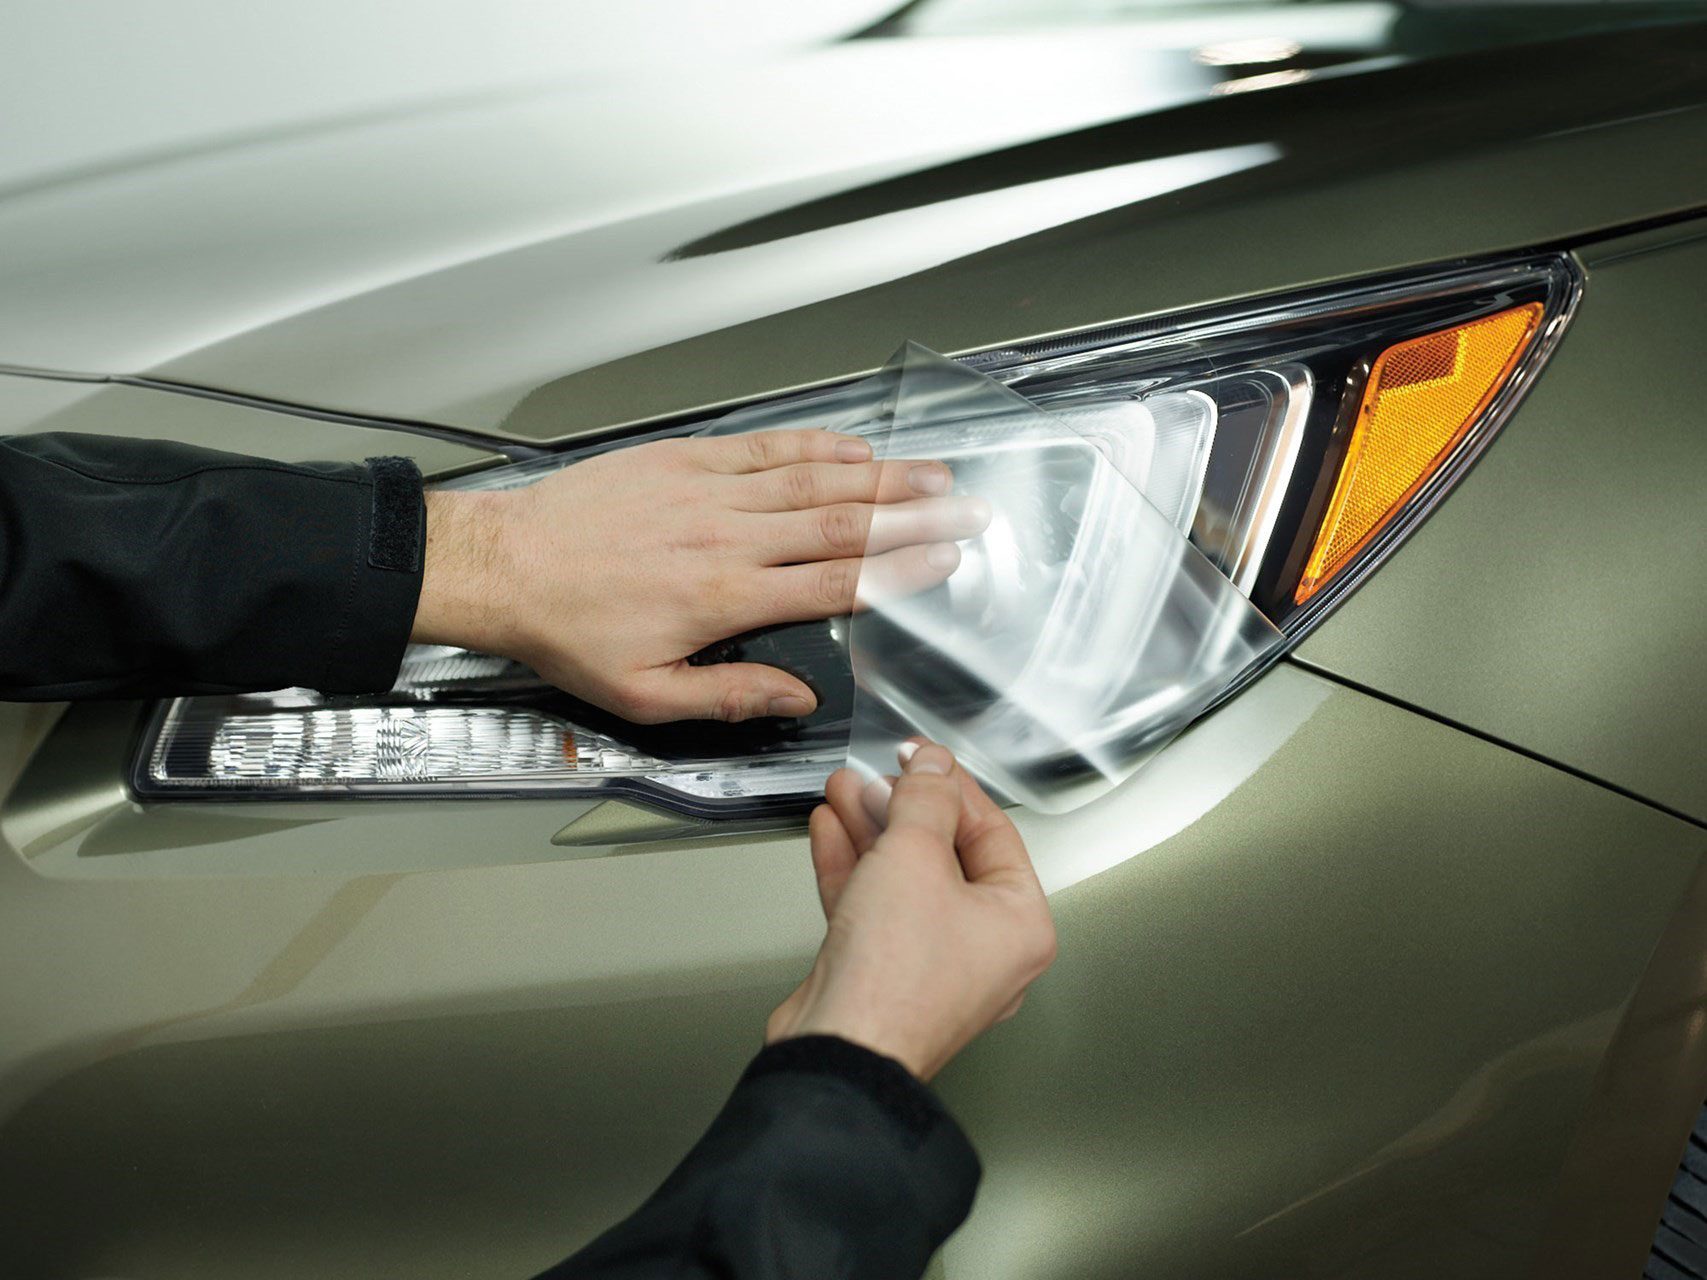 WeatherTech LampGard being installed onto the headlight of a car.